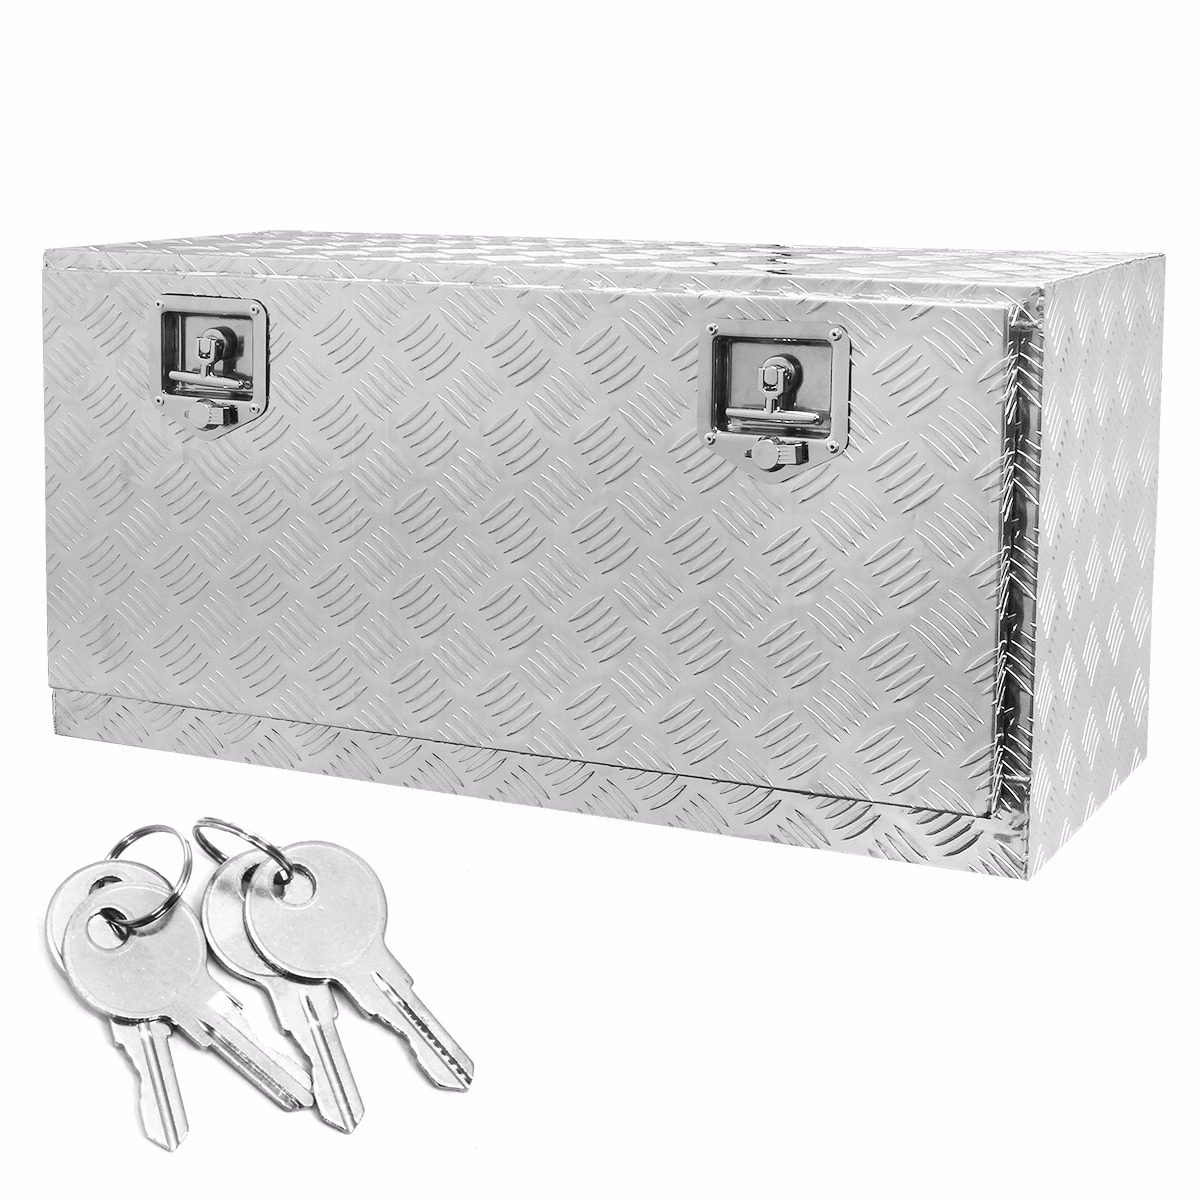 "36"" Truck Tool Box Aluminum Pickup Flat Bed, with Build-in Lock by Stark"